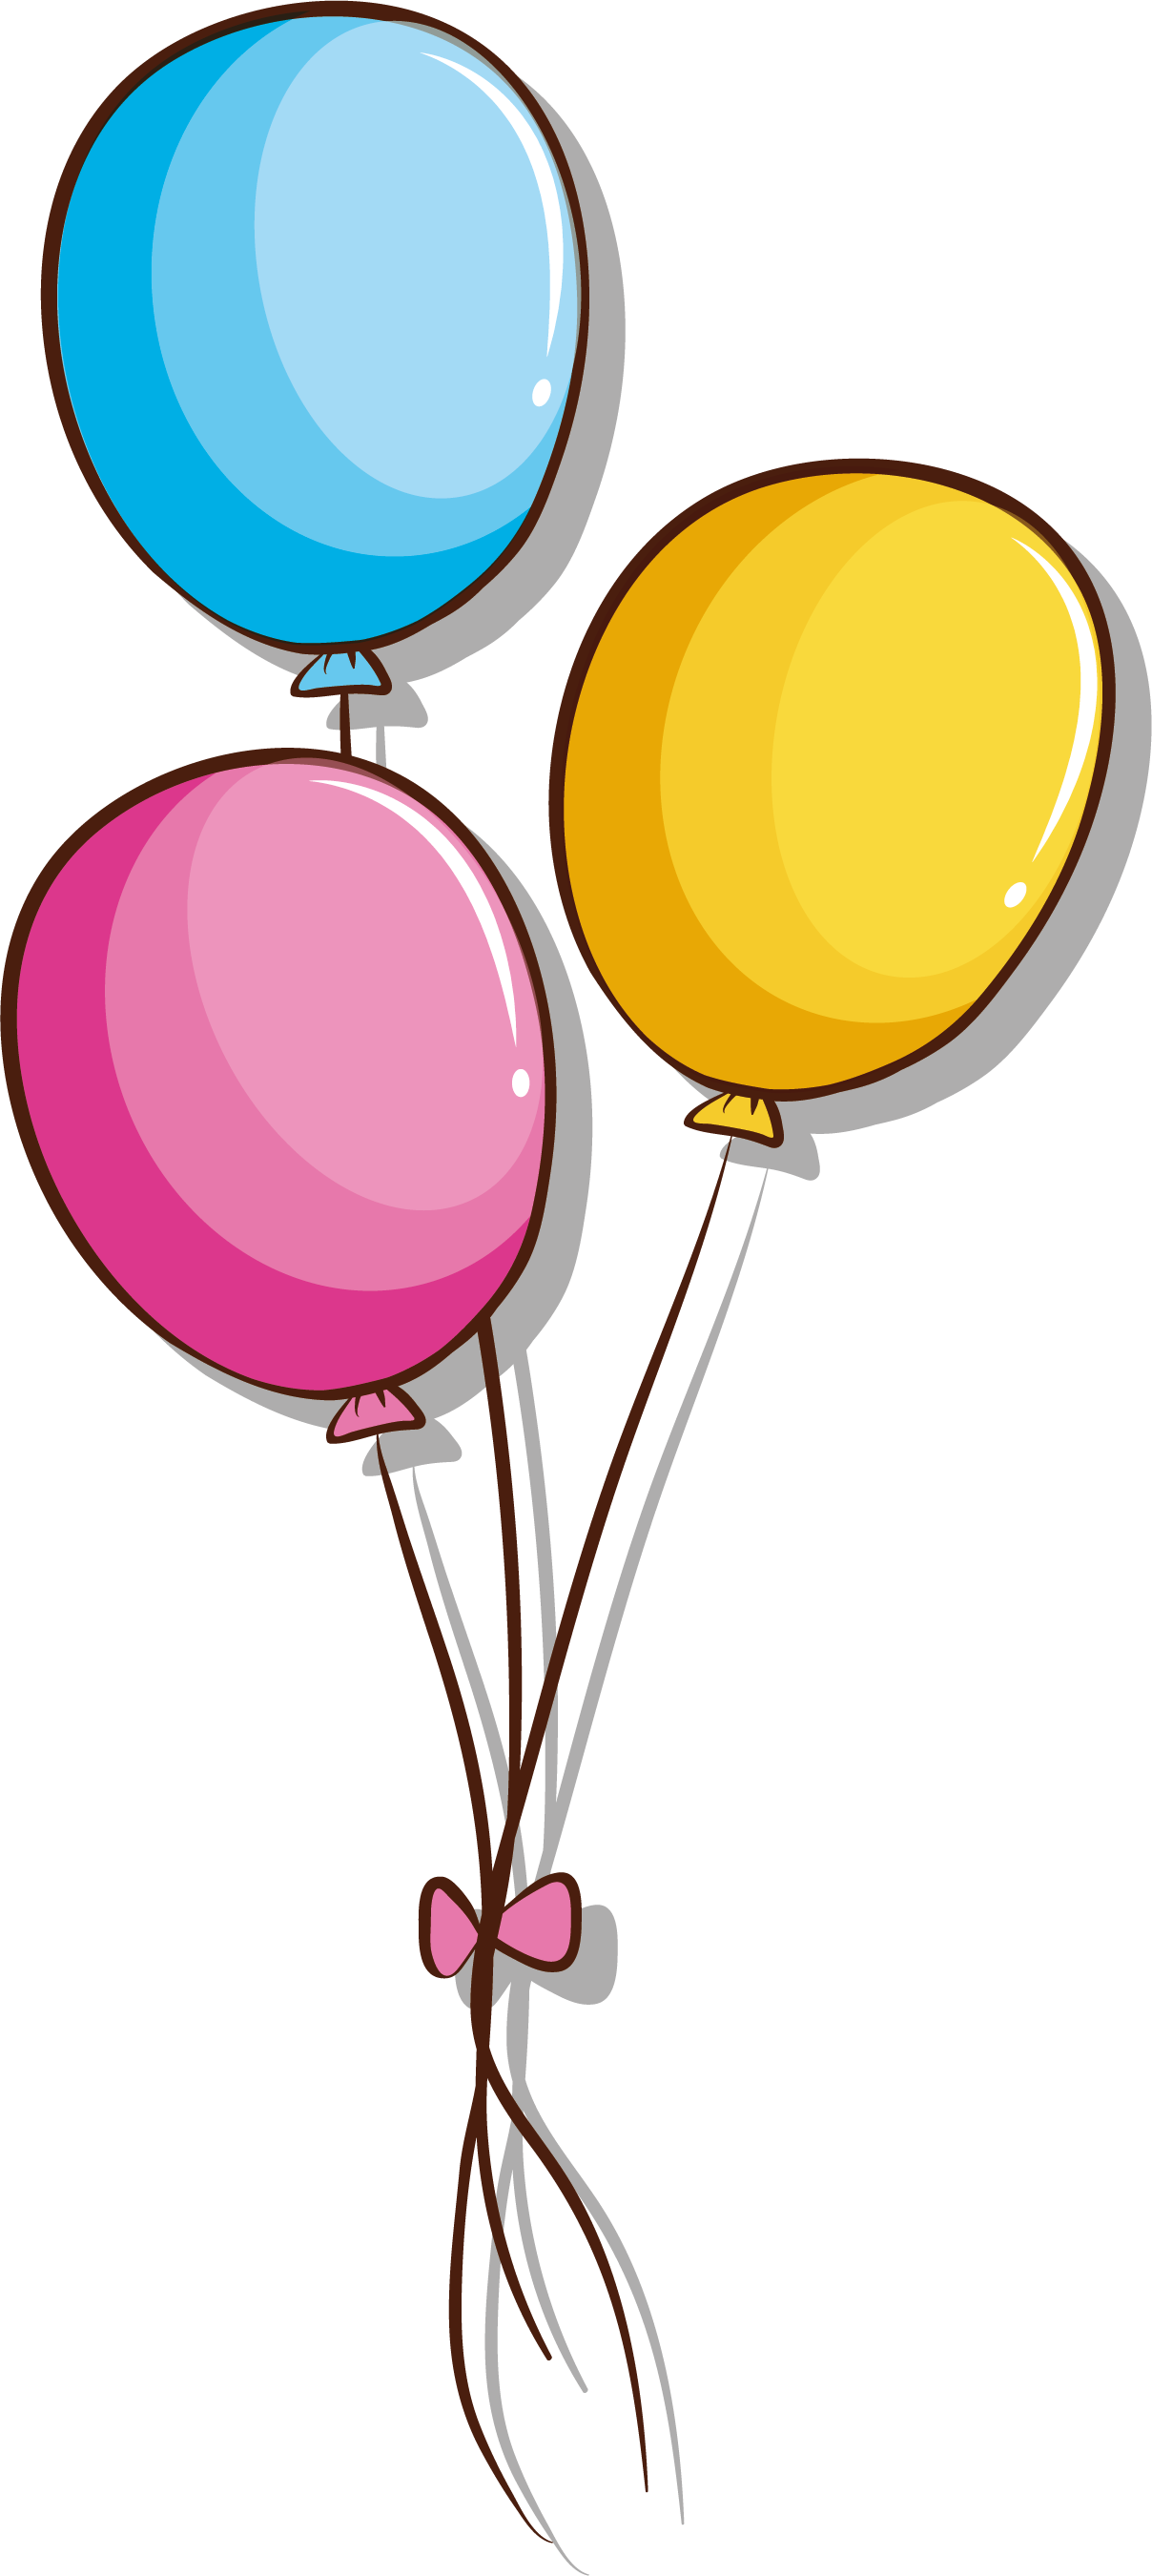 Ballon drawing bunch balloon. Toy illustration a of